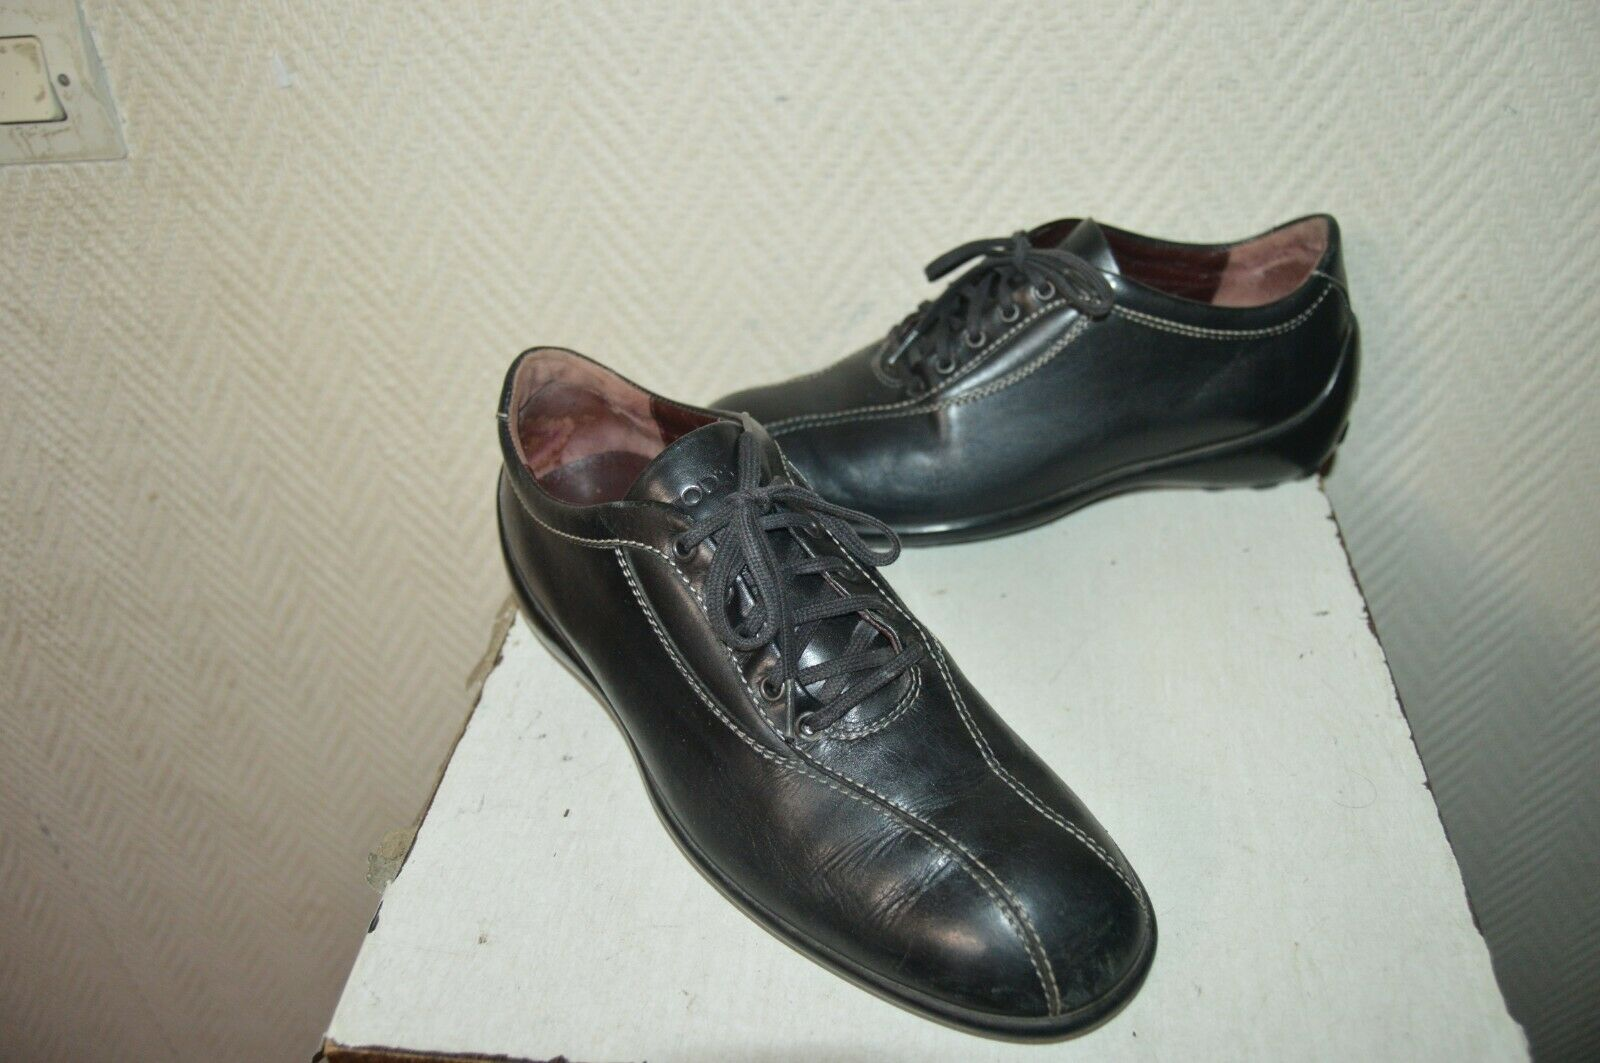 Chaussure A 5 Taille Chaussures Lacet 36 Tod's Leather Cuir eH2WYE9bDI